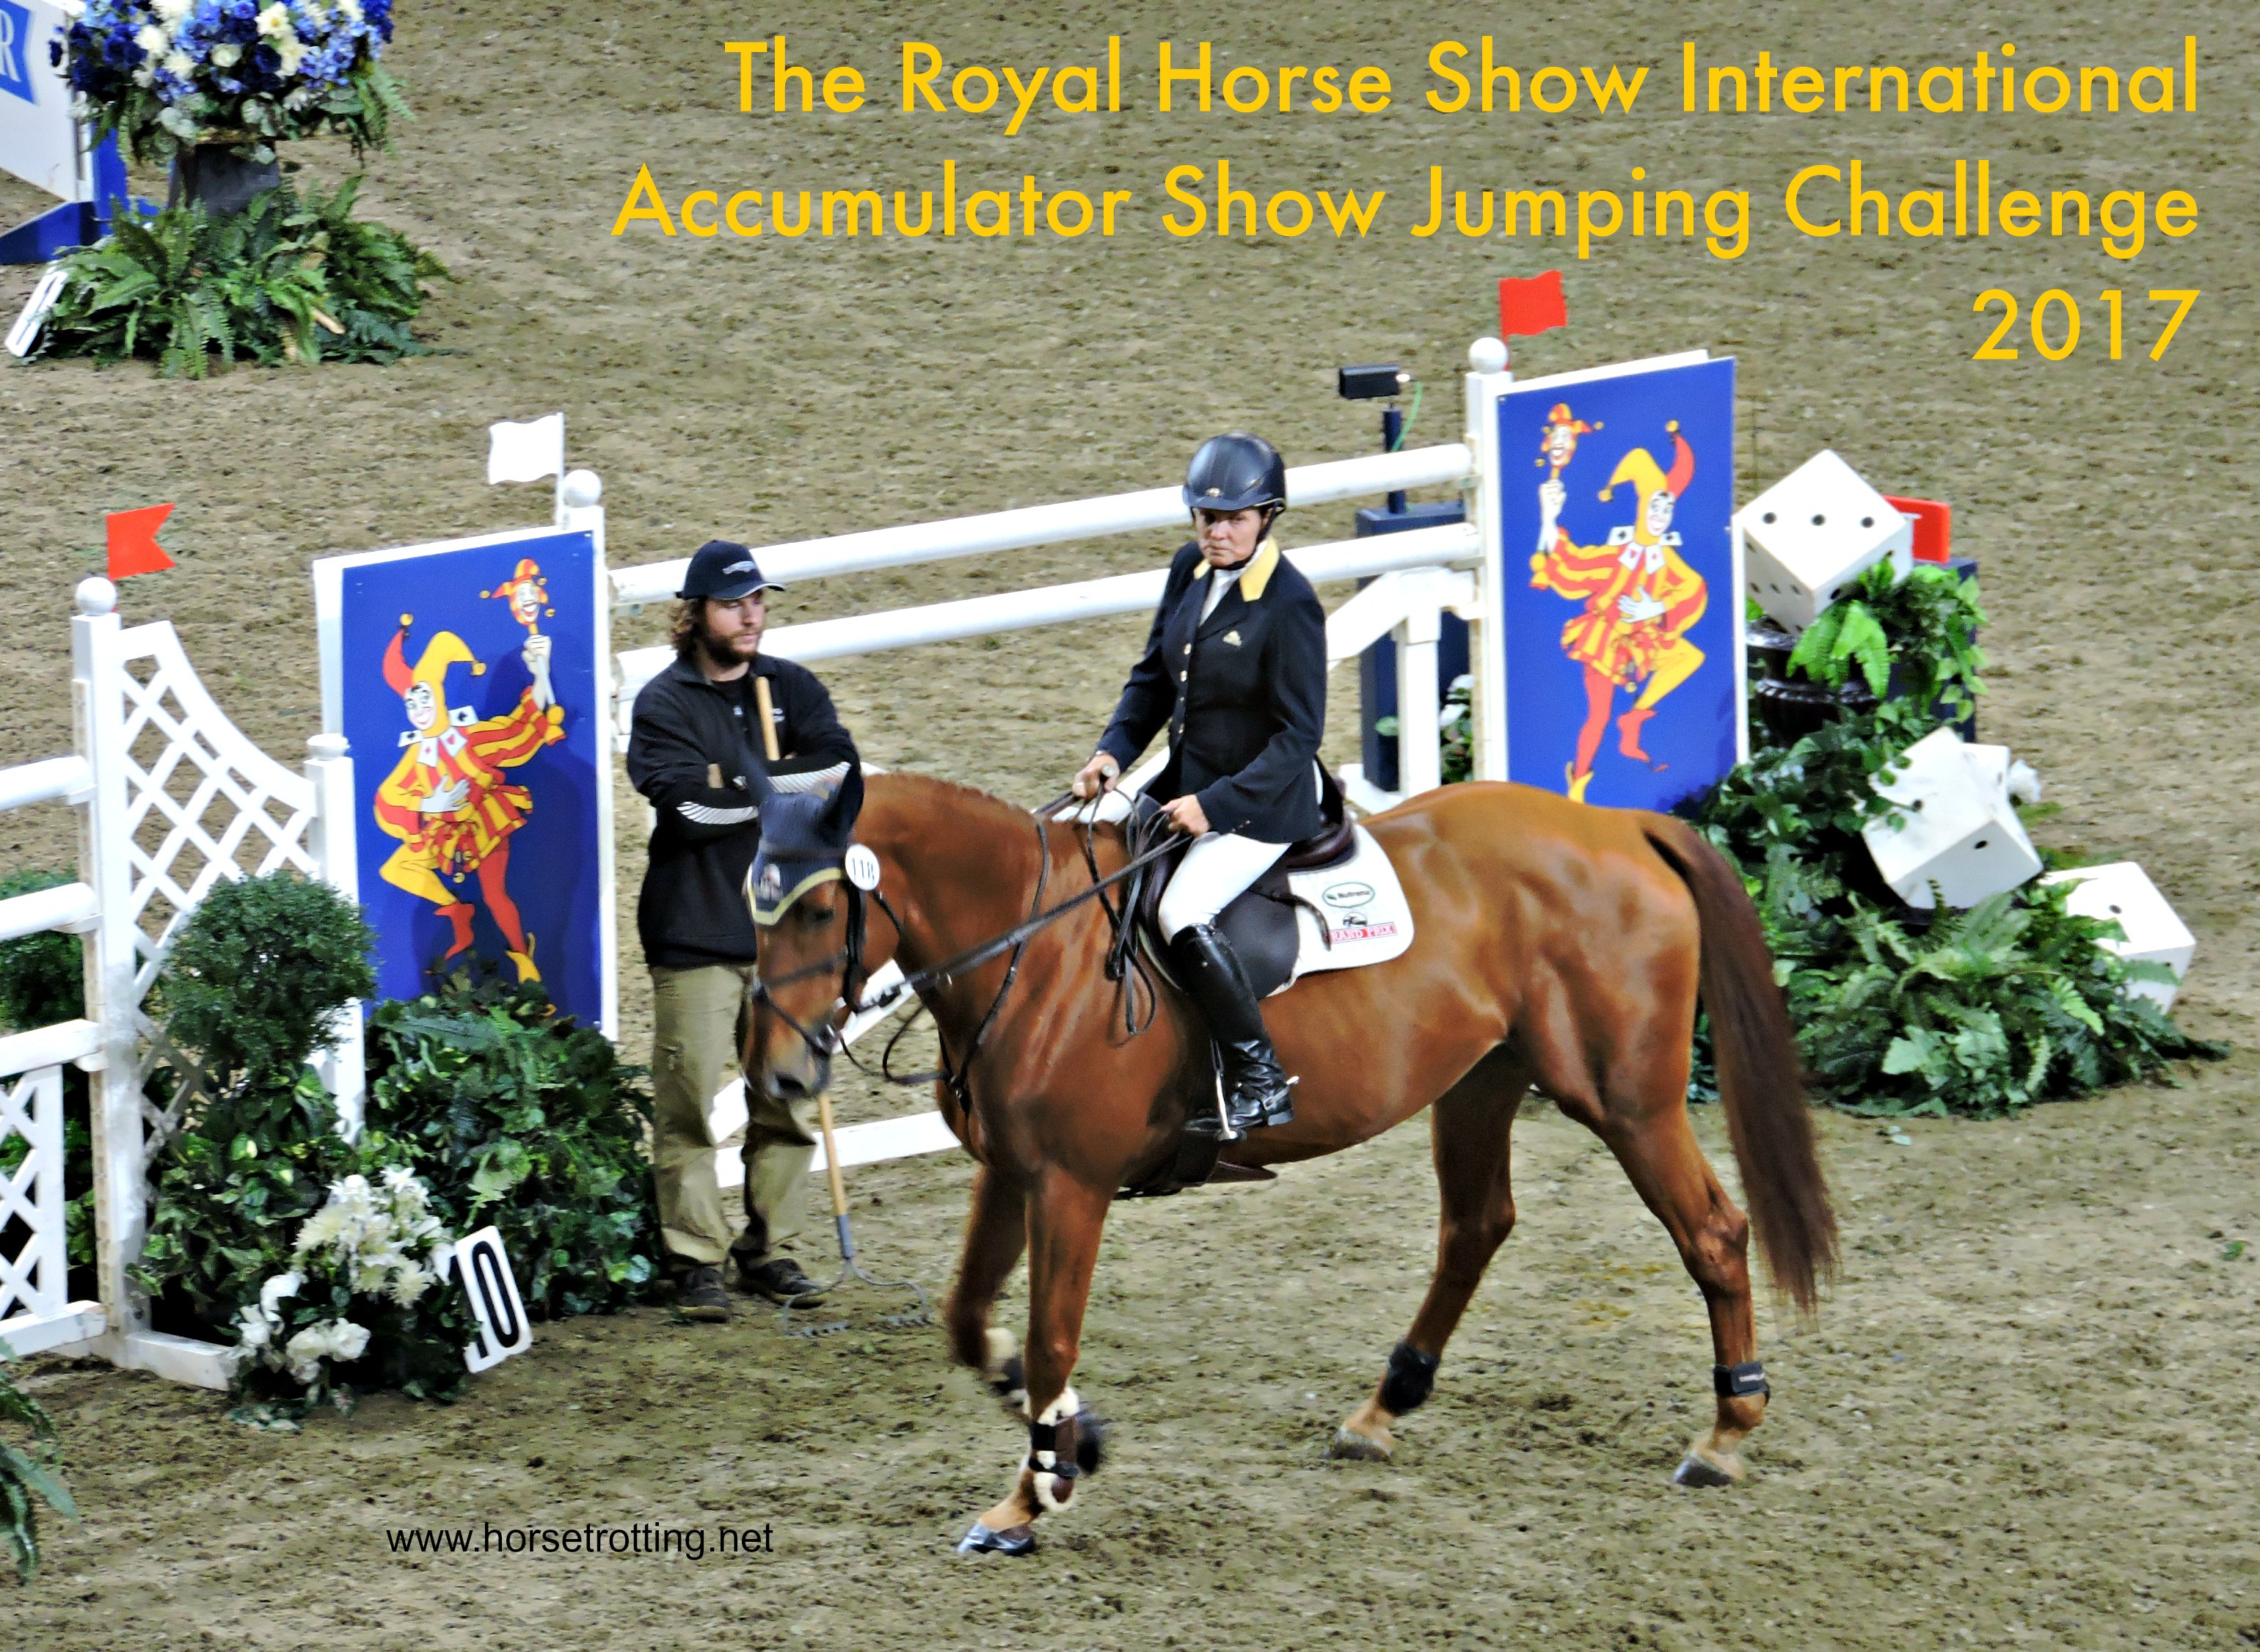 Travel Toronto (Part IV): The Royal International Accumulator Show Jumping Challenge